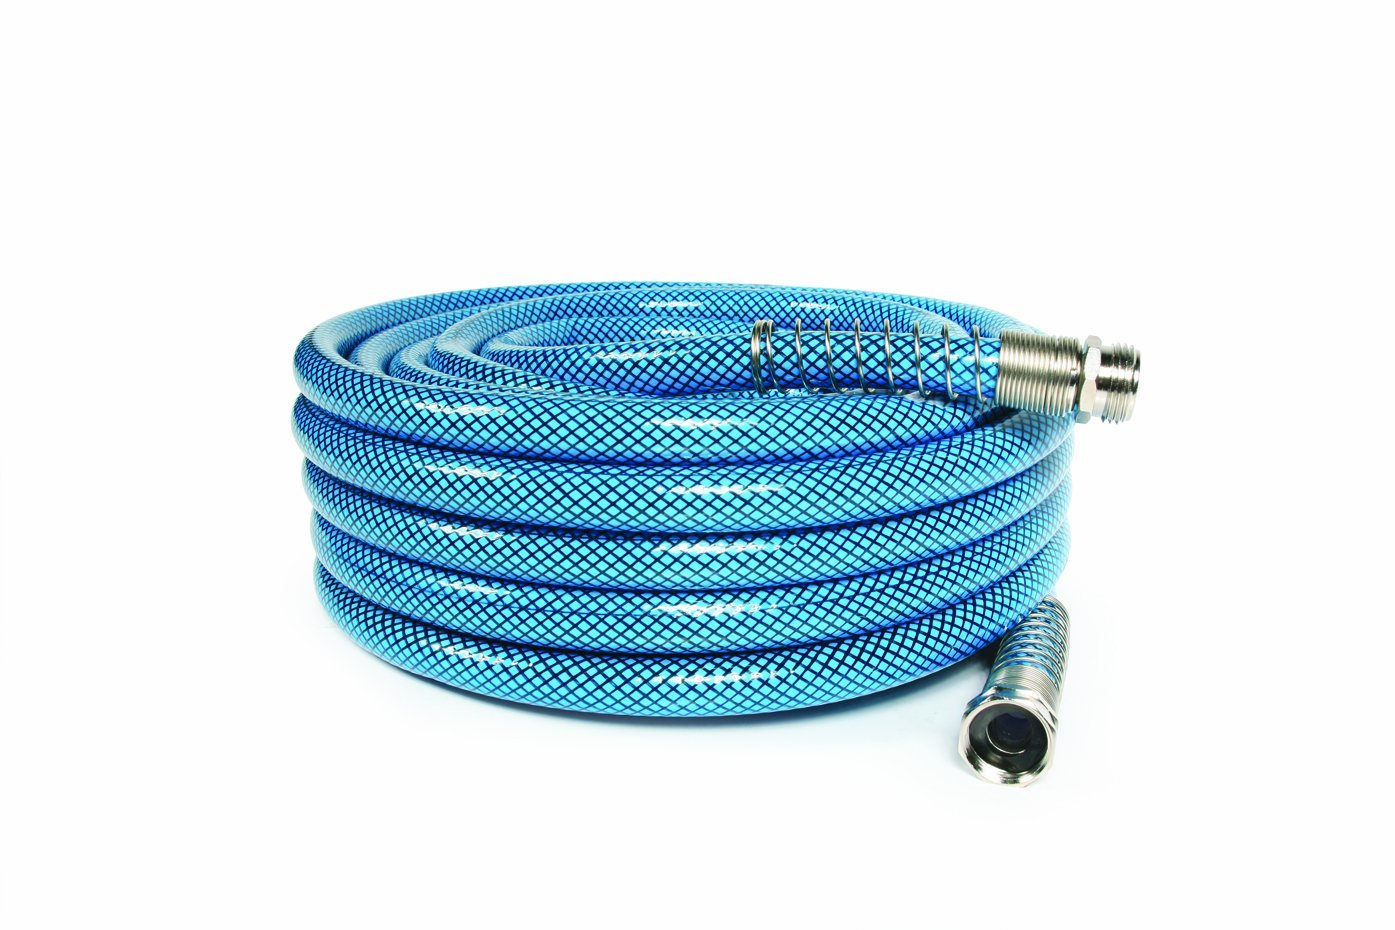 Camco 50ft Premium Drinking Water Hose - Lead Free, Anti-Kink Design, 20% Thicker Than Standard Hoses (5/8'Inside Diameter) (22853)